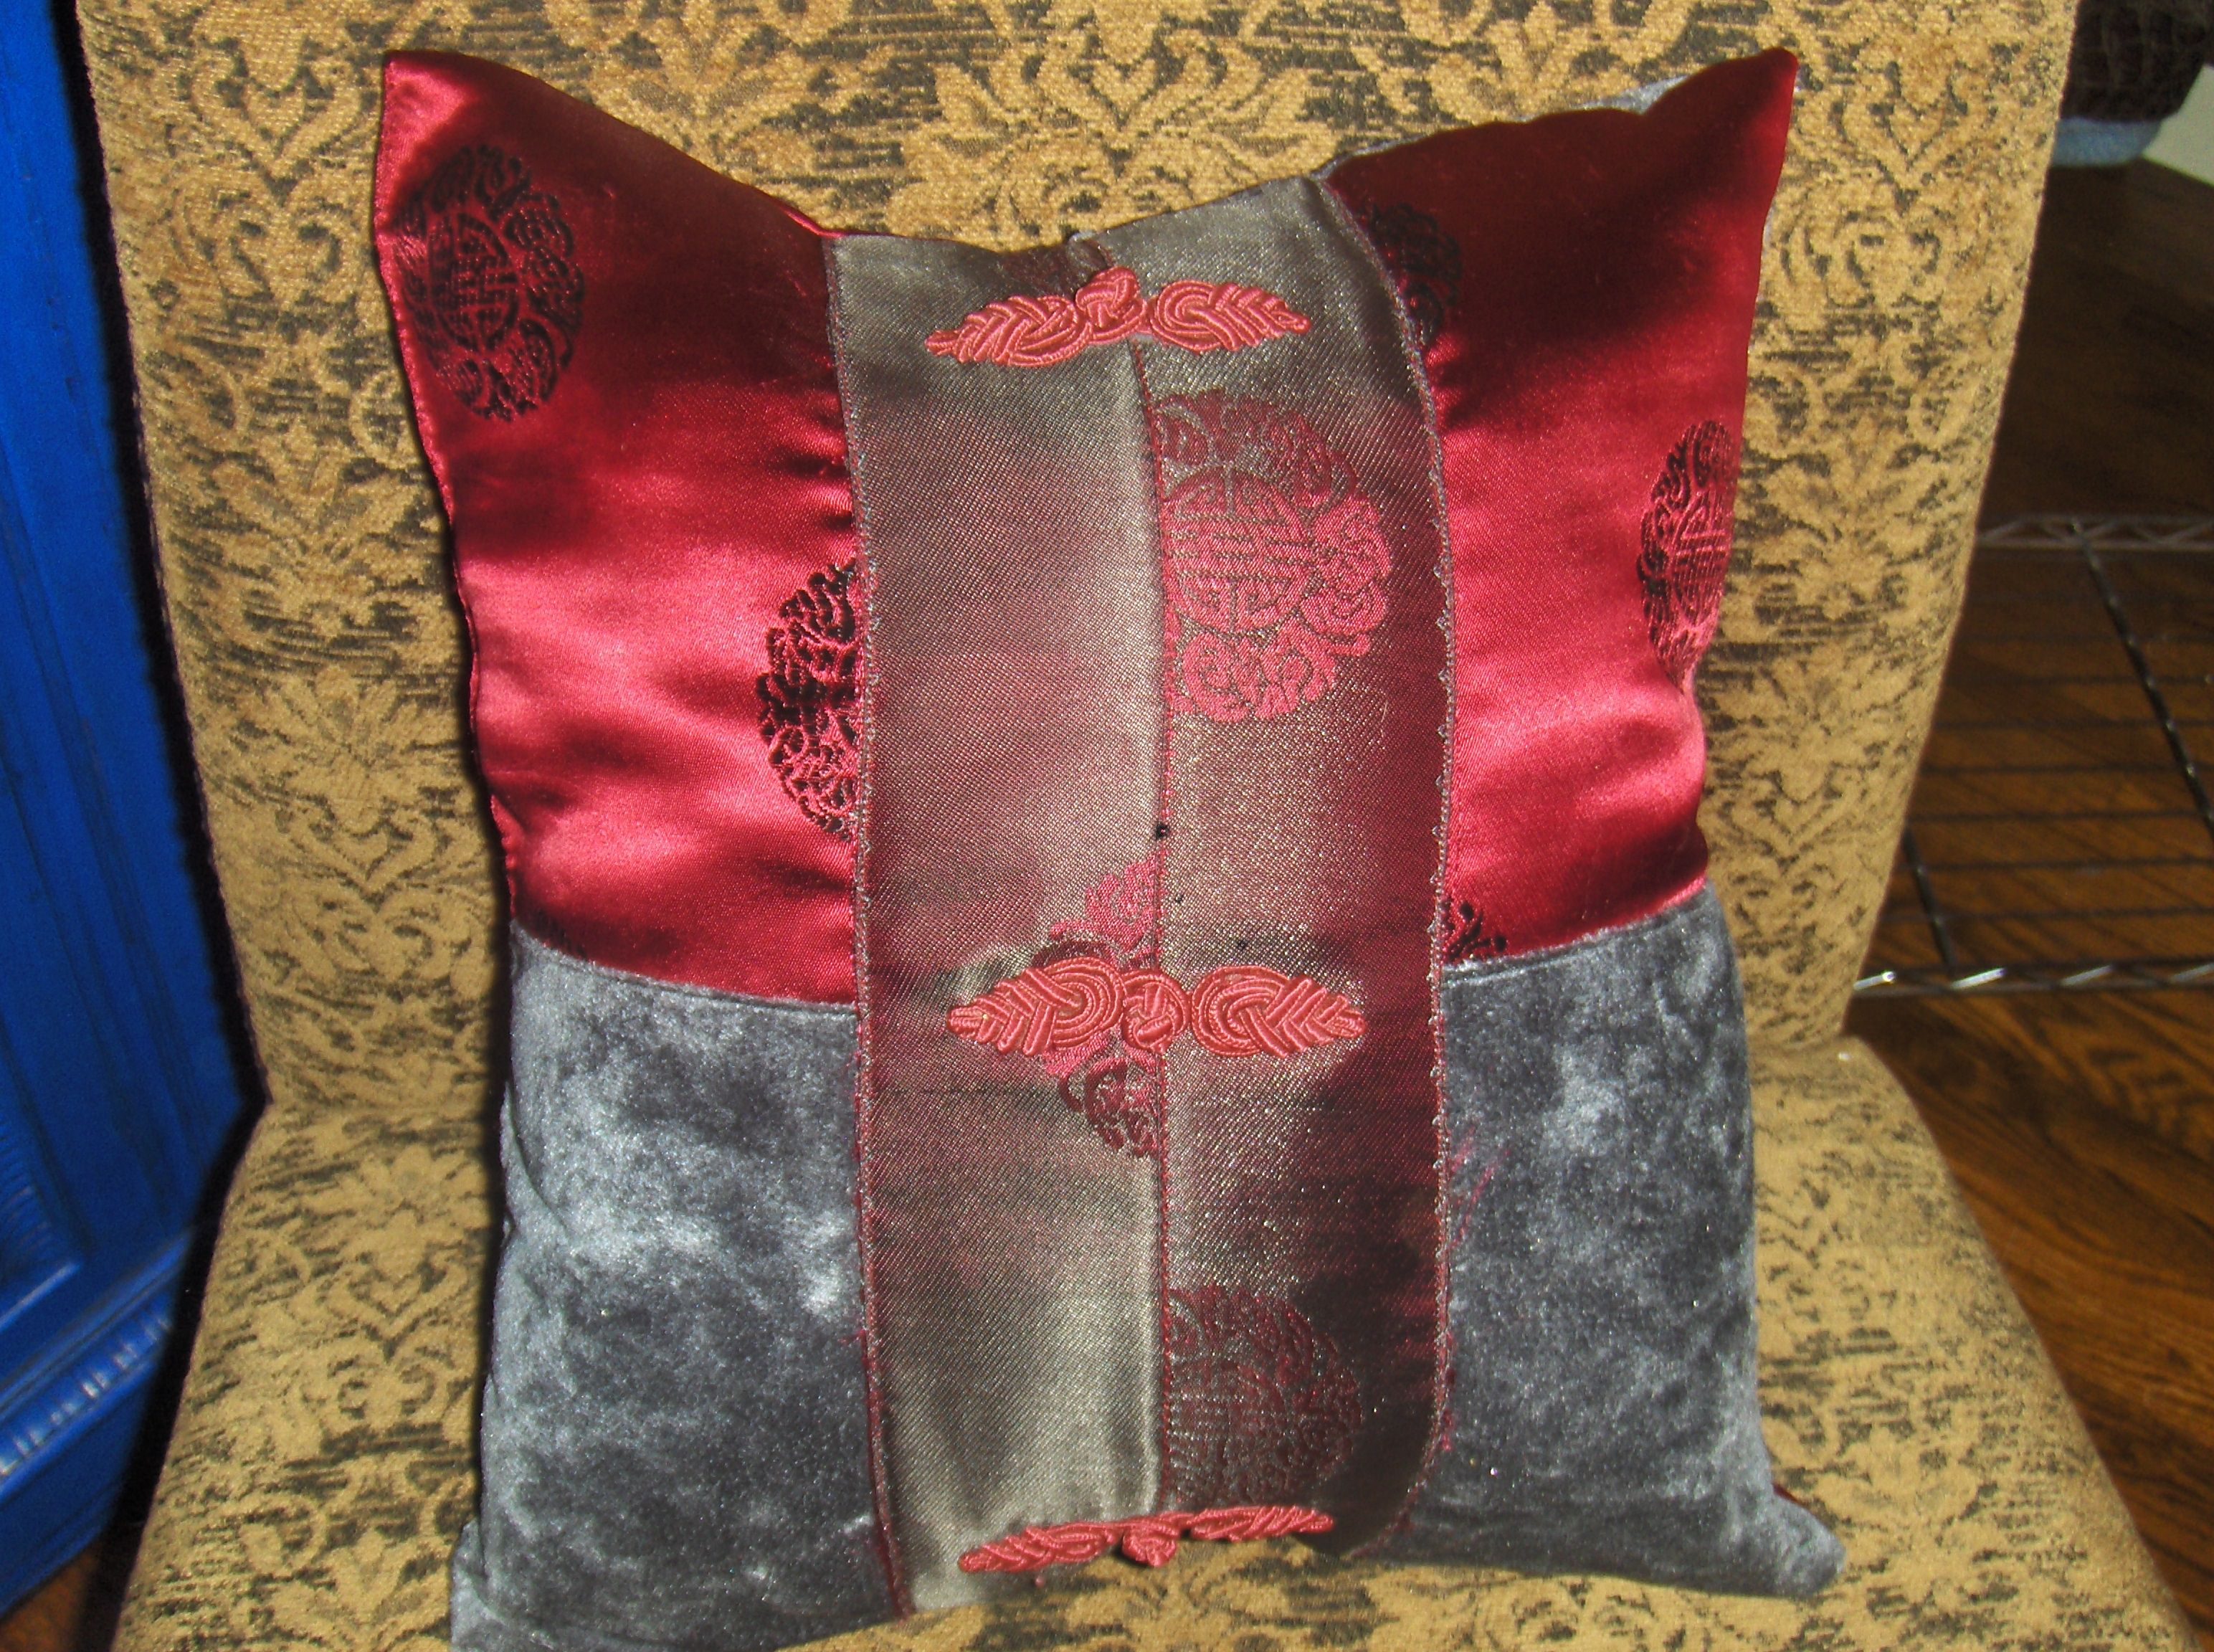 Recycling - left over fabrics, saving old dresses etc. and reusing fabric from cuttings to make beautiful one-of-a-kind pillows, this red-grey pillow was bought by a customer for her daughter's room